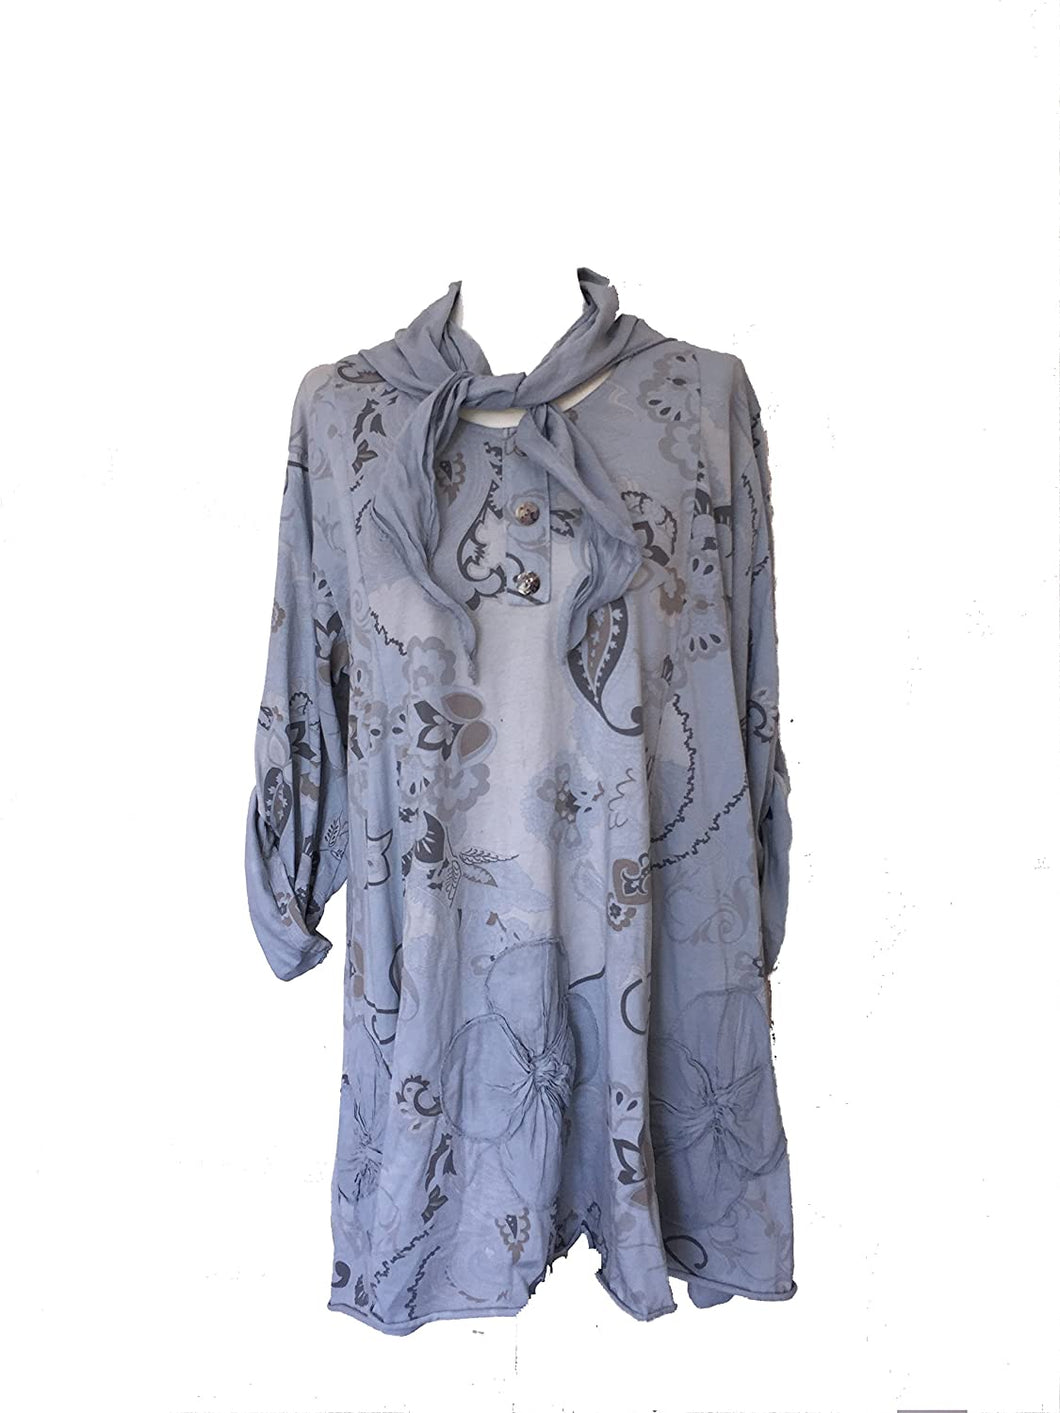 Pamper Yourself Now ltd Ladies Tunic with Funky Flower Design with 3 Quarter Length Sleeves, with a Small Neck Scarf. 97% Cotton Made in Italy (AA27)